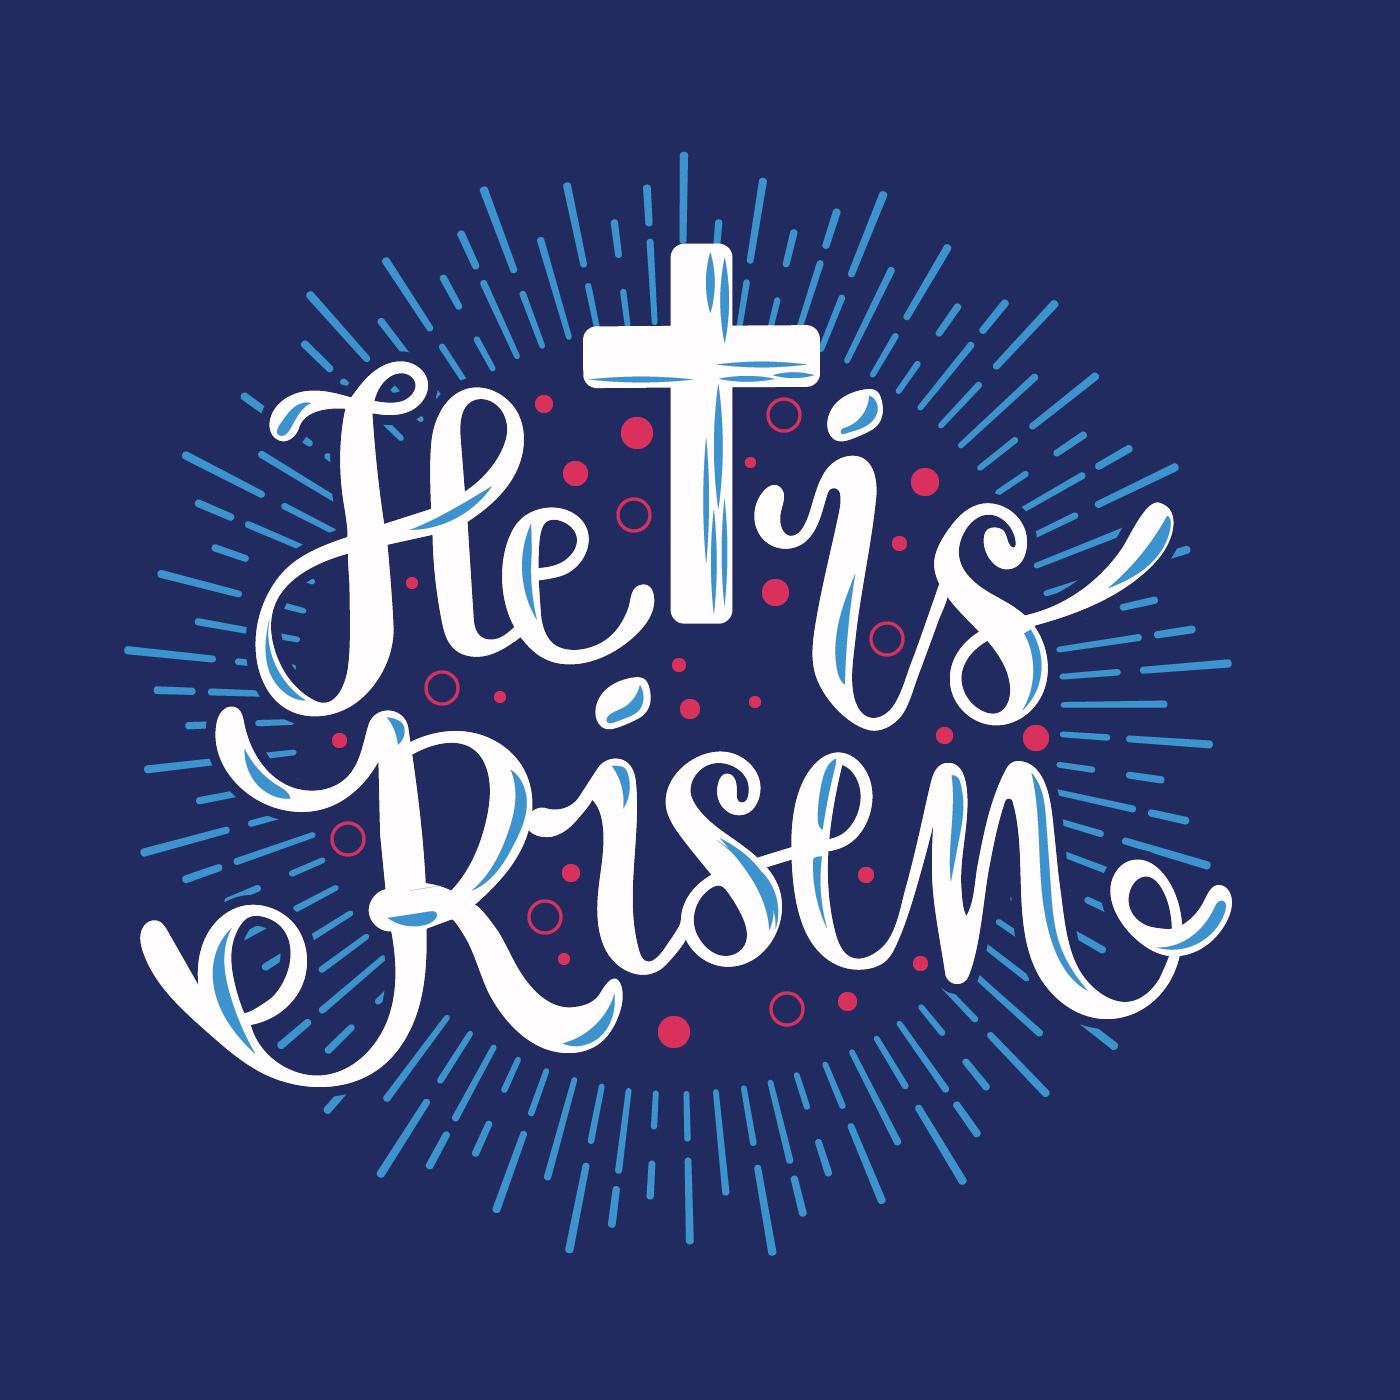 He Is Risen Typographical Background With Sunrise Background